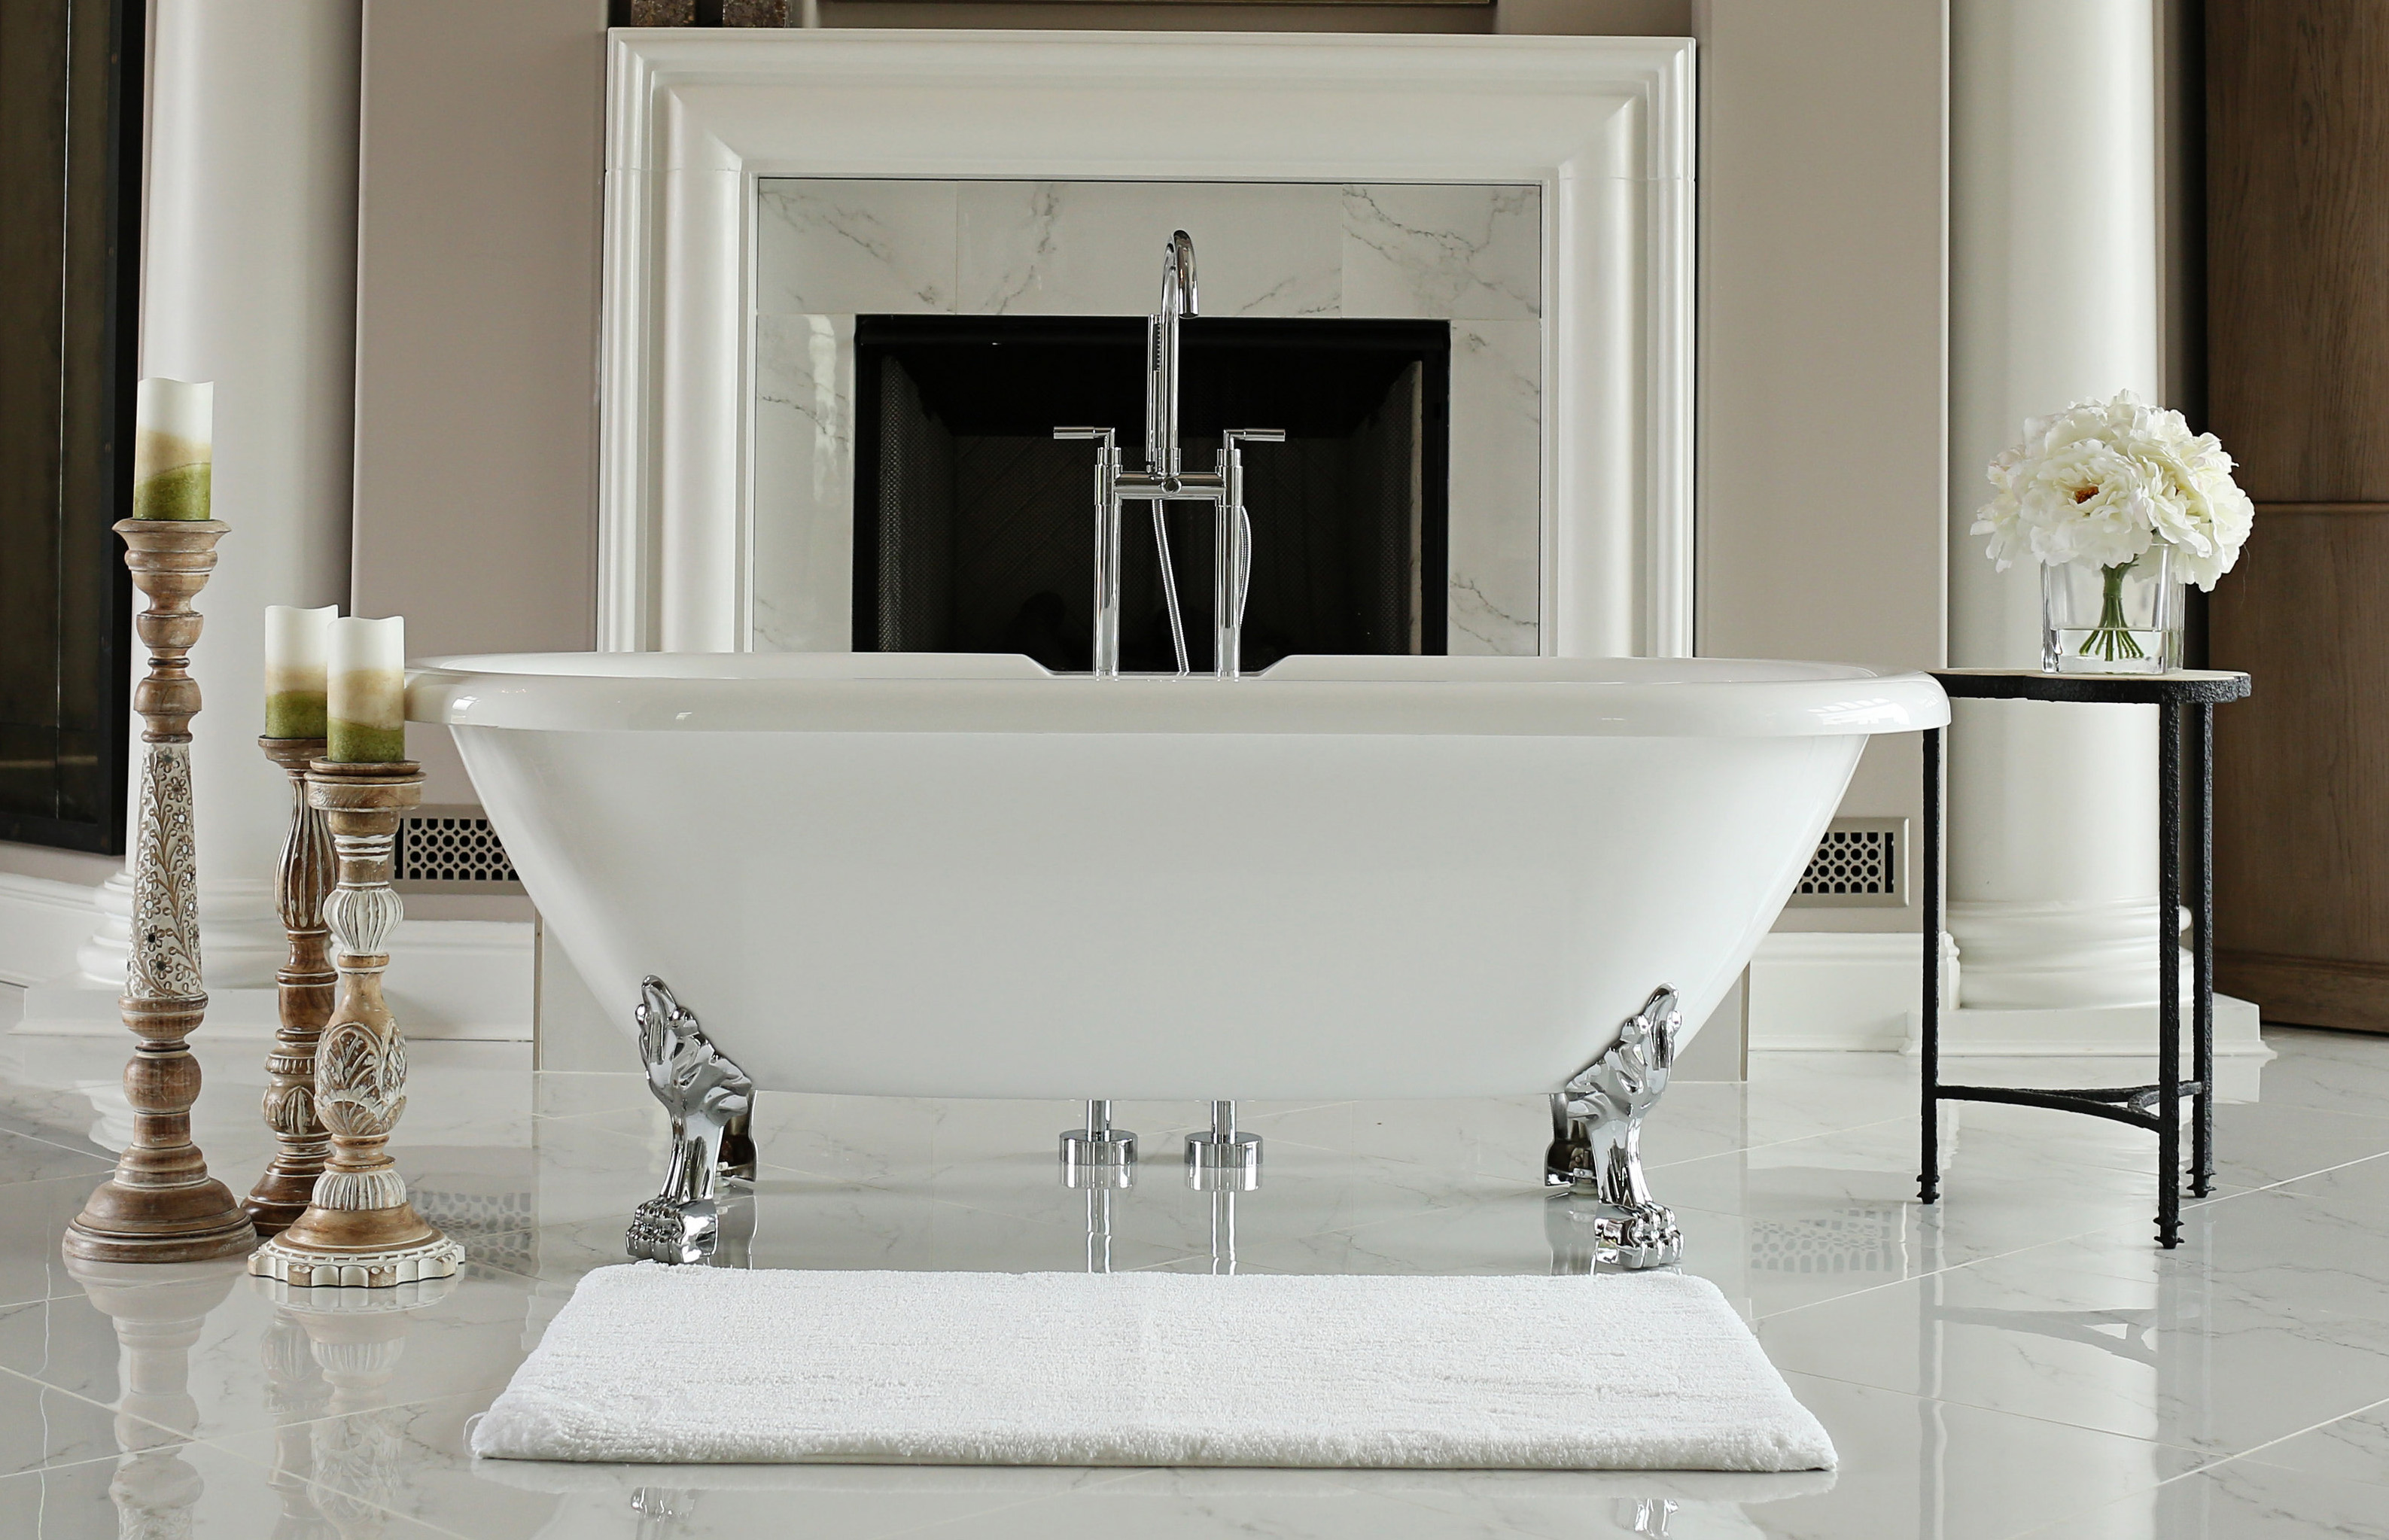 SIGNATURE BATH - LUXURY BATHS!